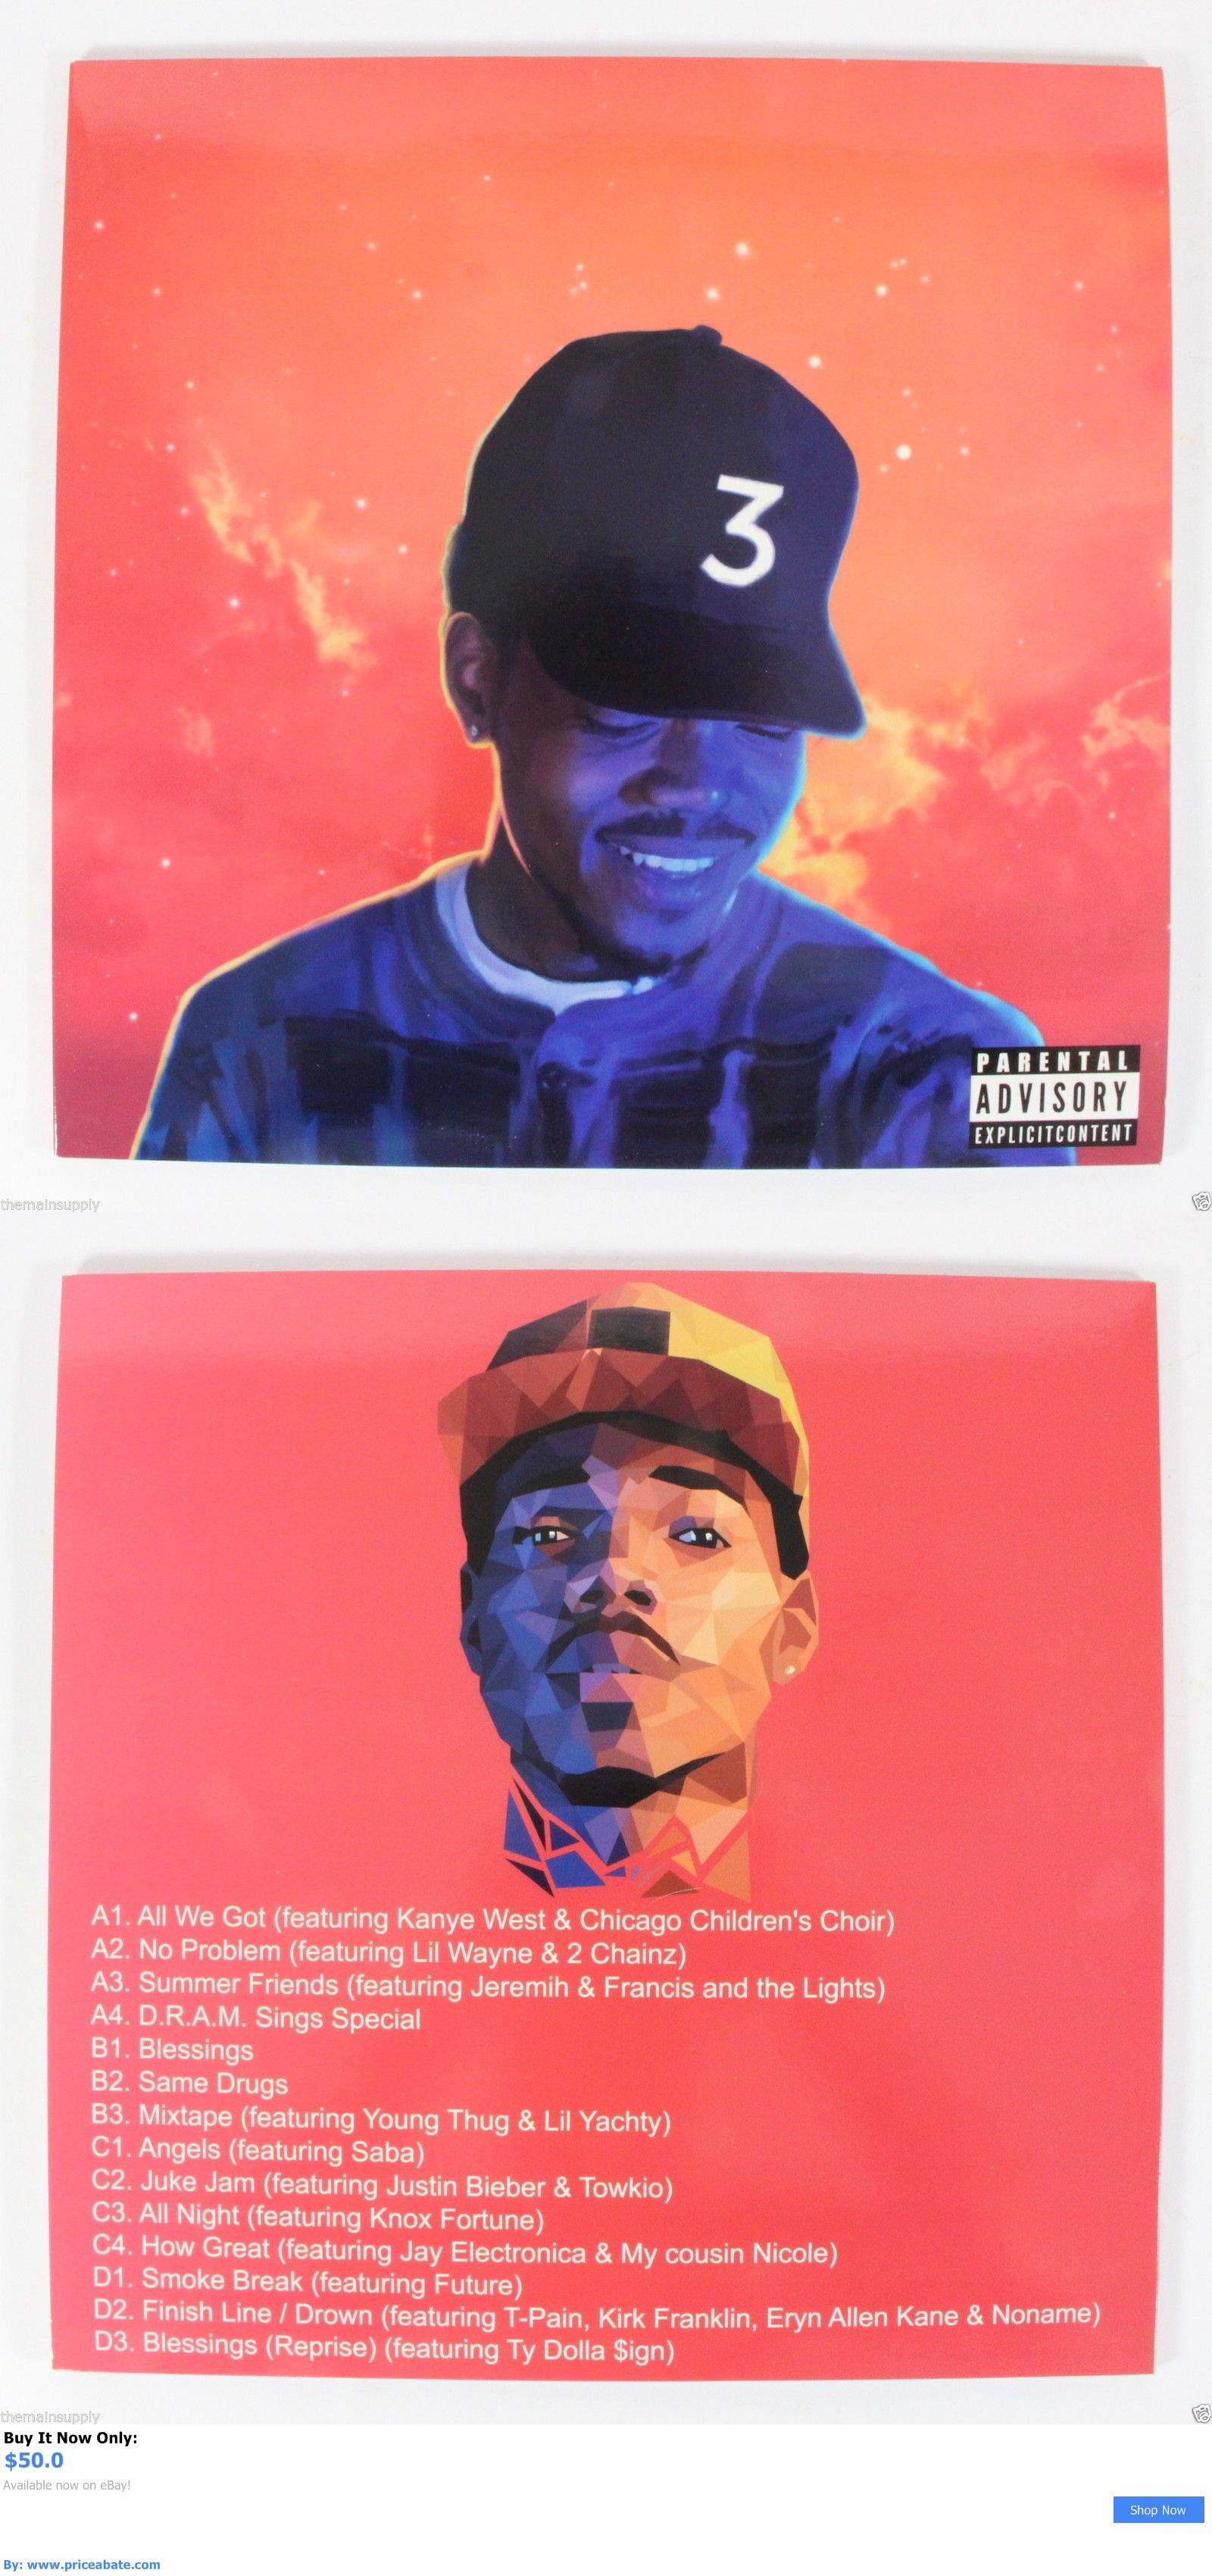 Music albums chance the rapper coloring book 2lp Coloring book 2 chance the rapper